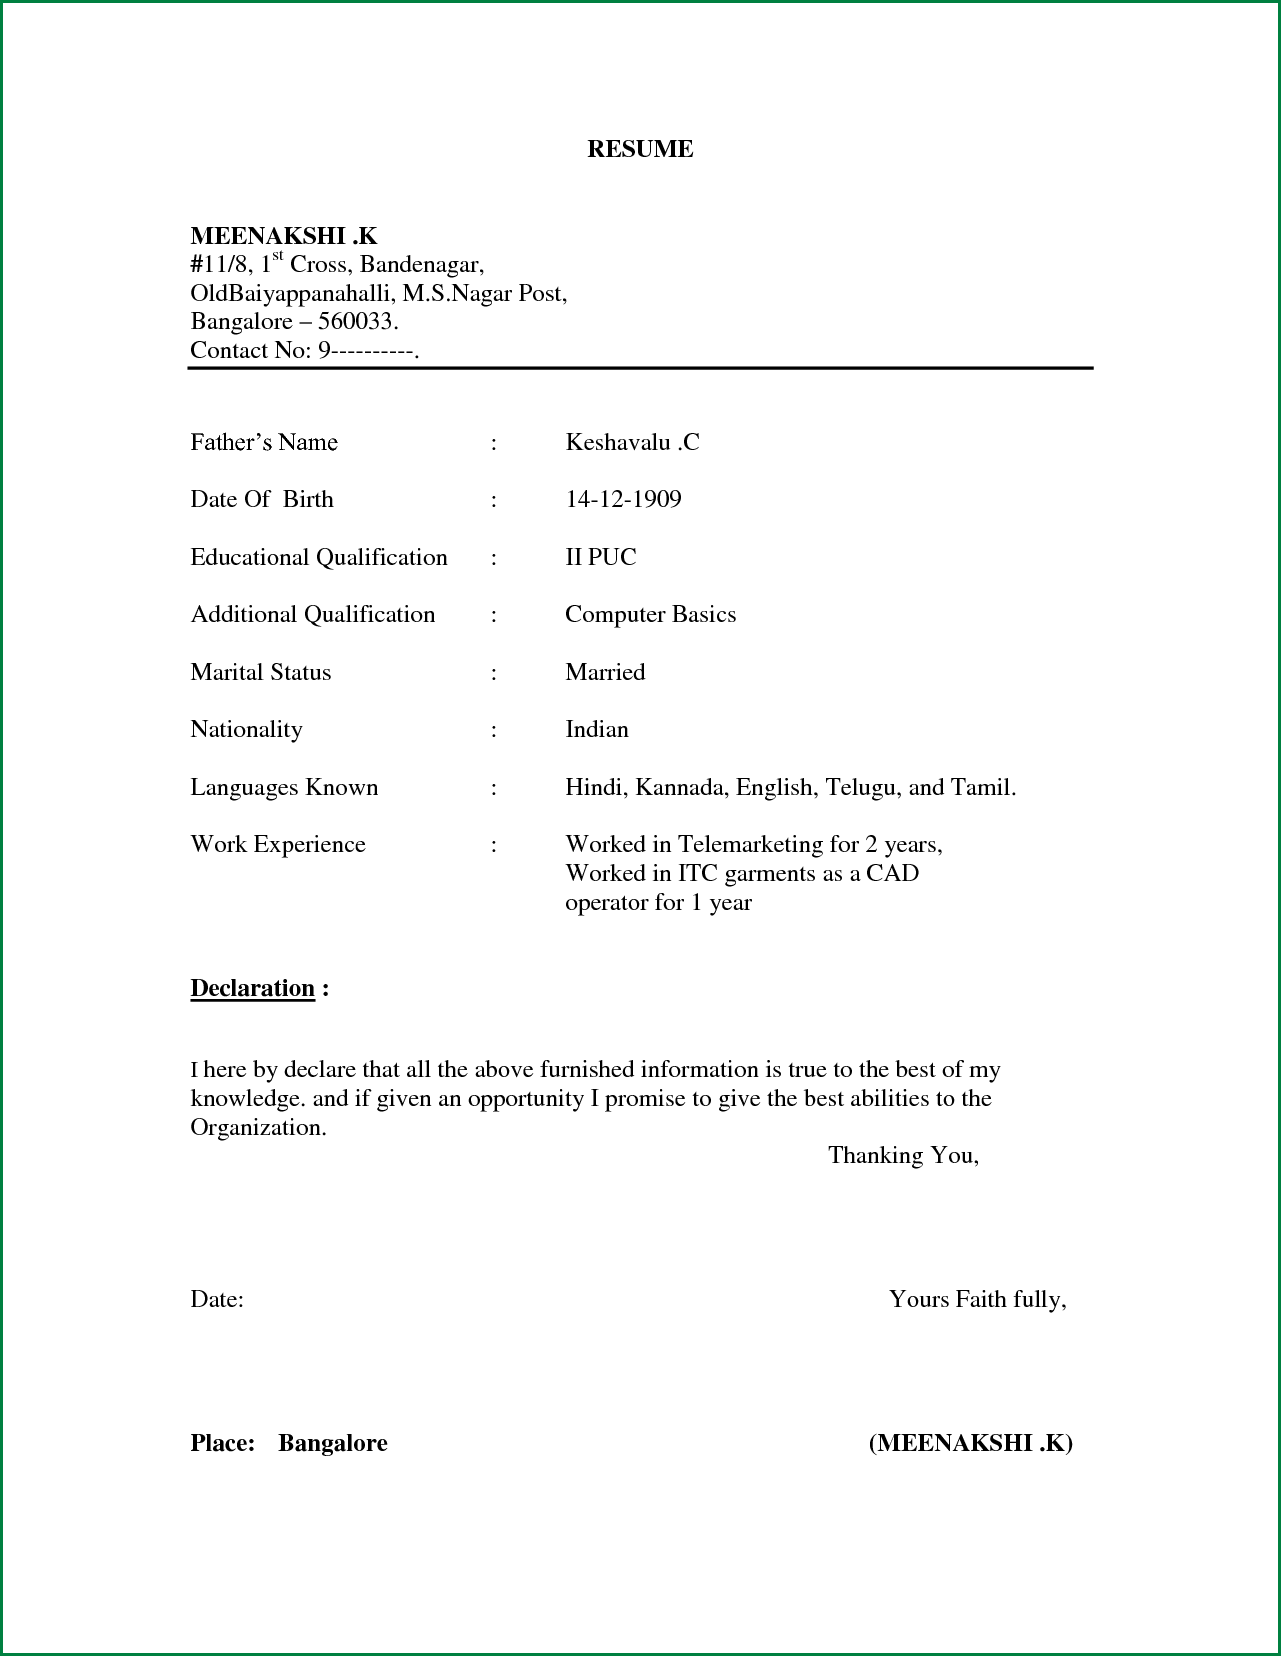 Simple Resume Format For Freshers In Word File.137085913.png ...